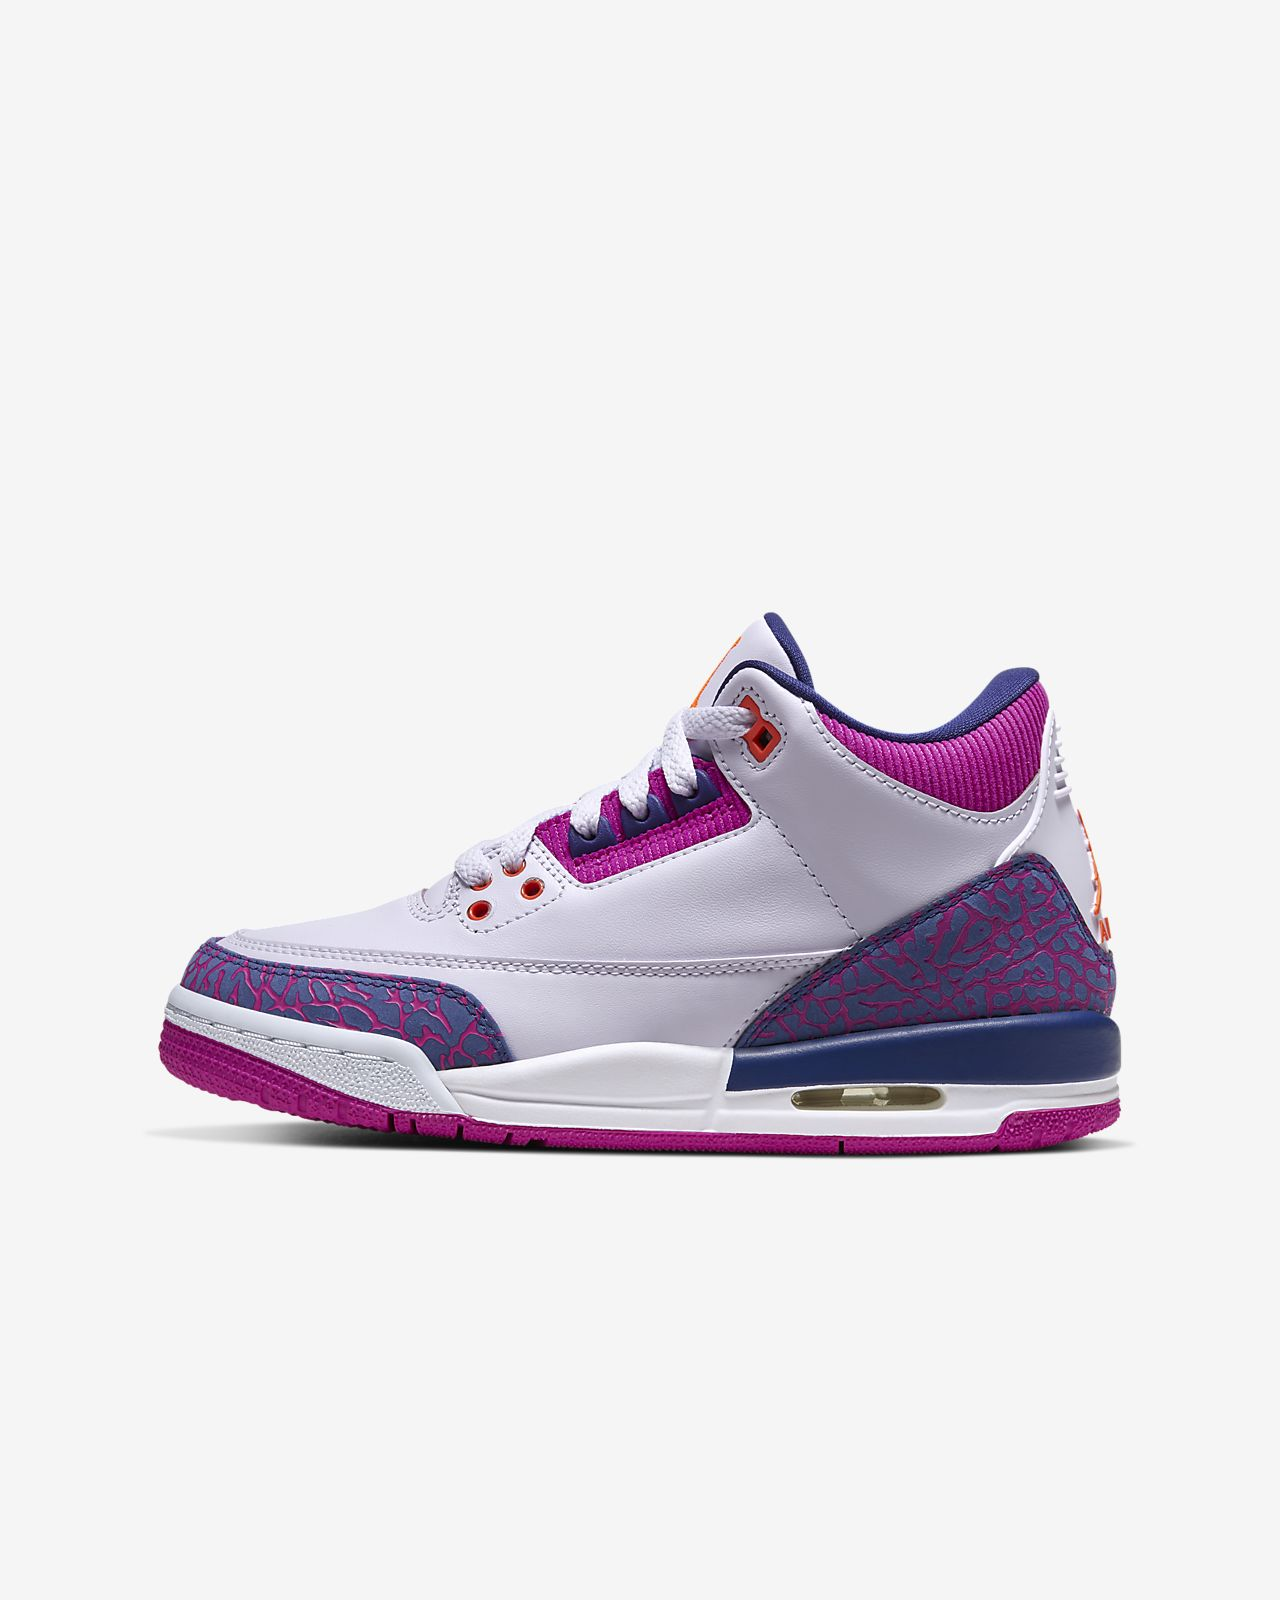 Jordans 3 Air Jordan 3 Retro Big Kids' Shoe. Nike.com